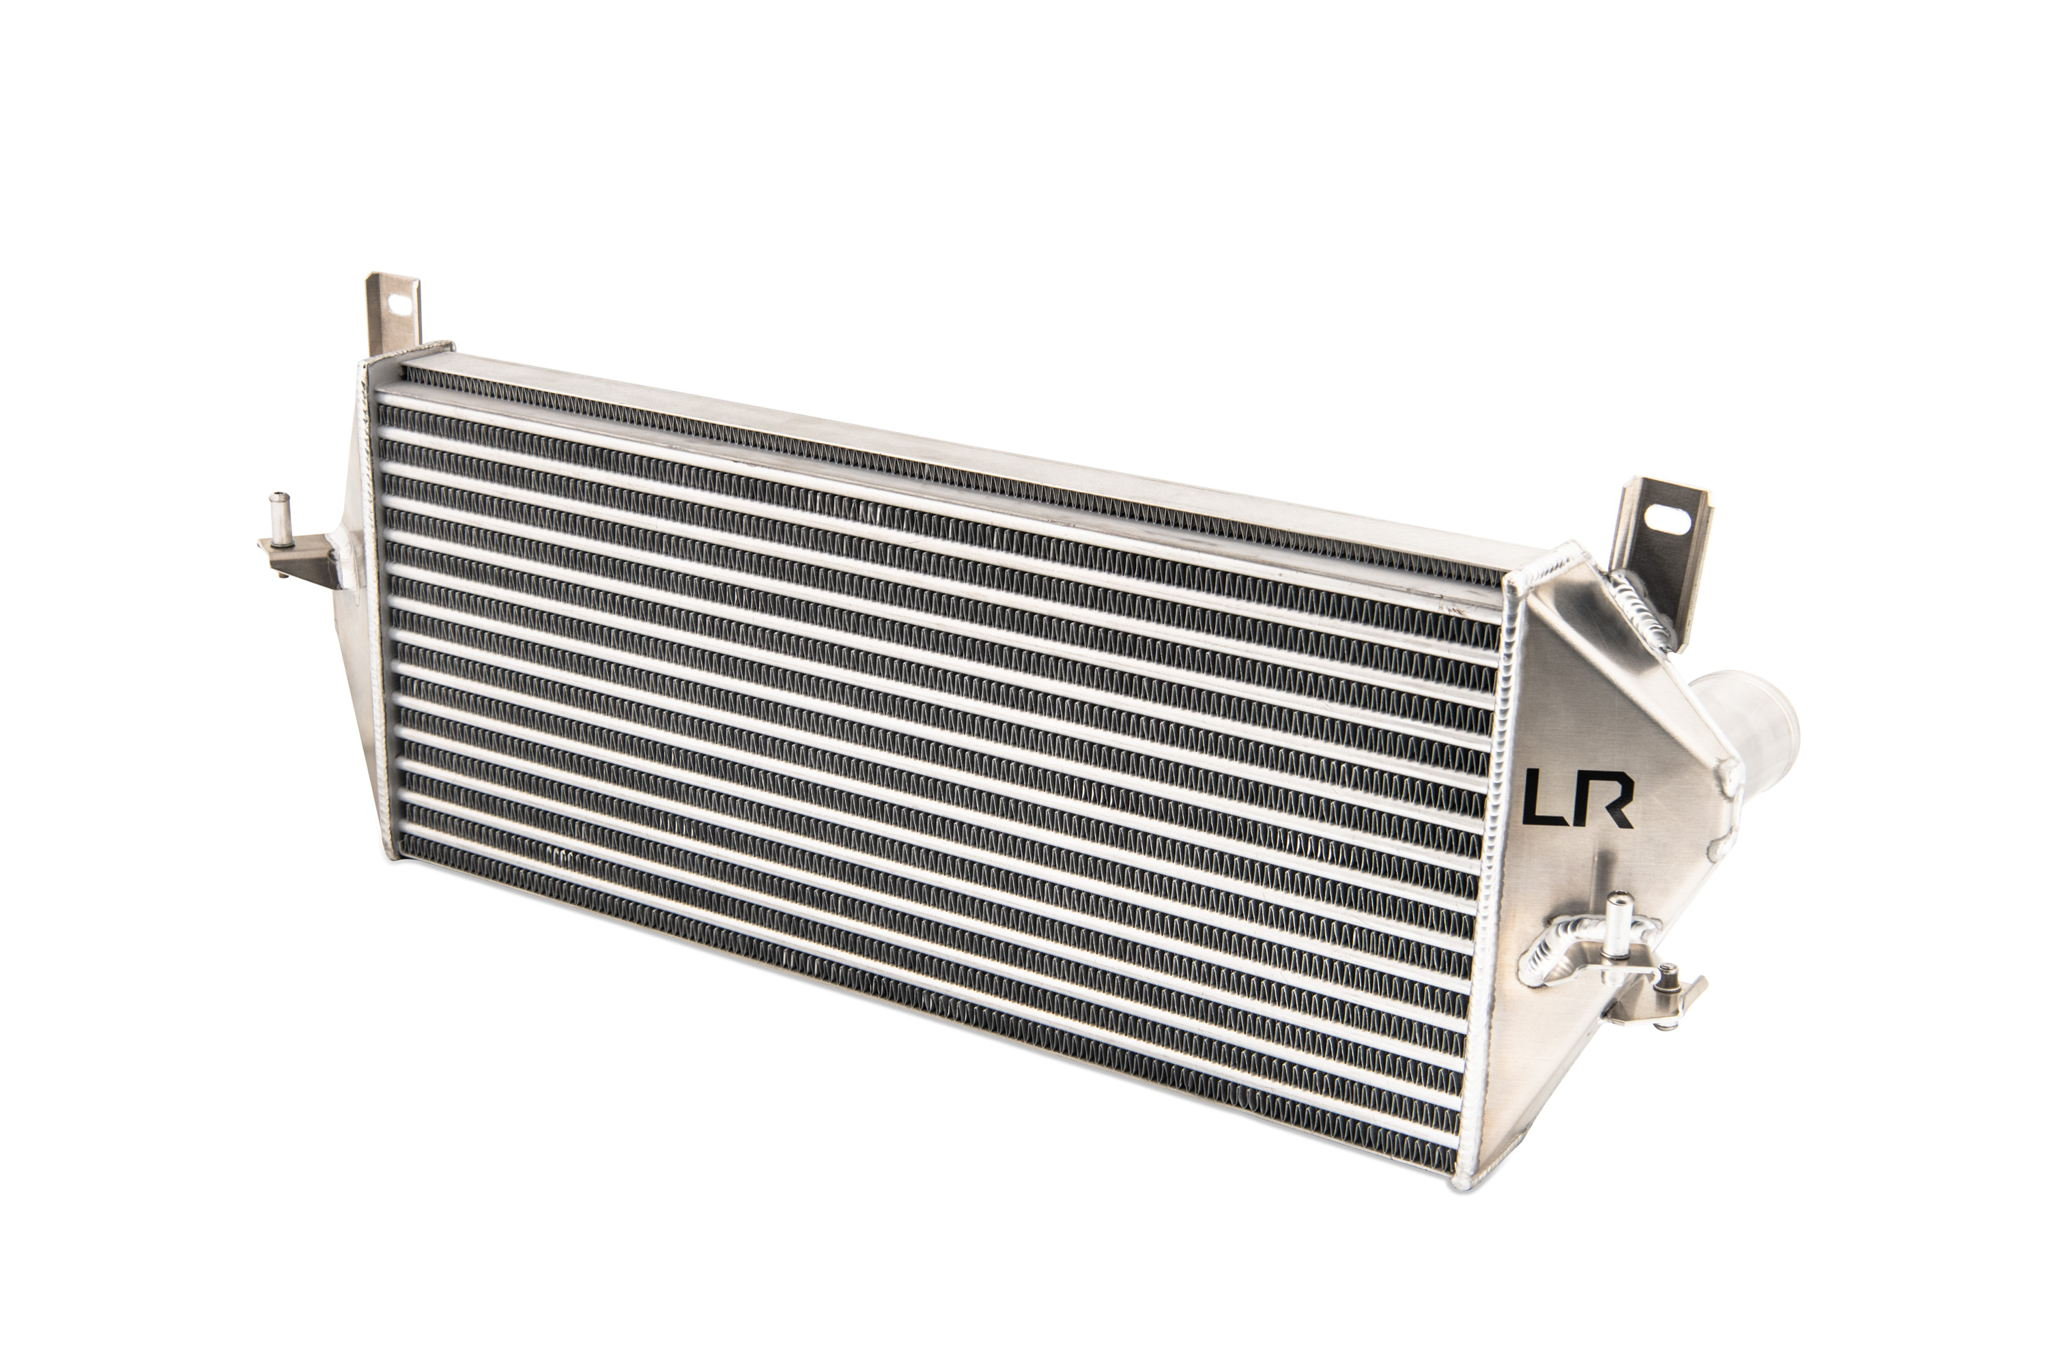 THE LR TD5/TDCI PERFORMANCE INTERCOOLER 's featured image